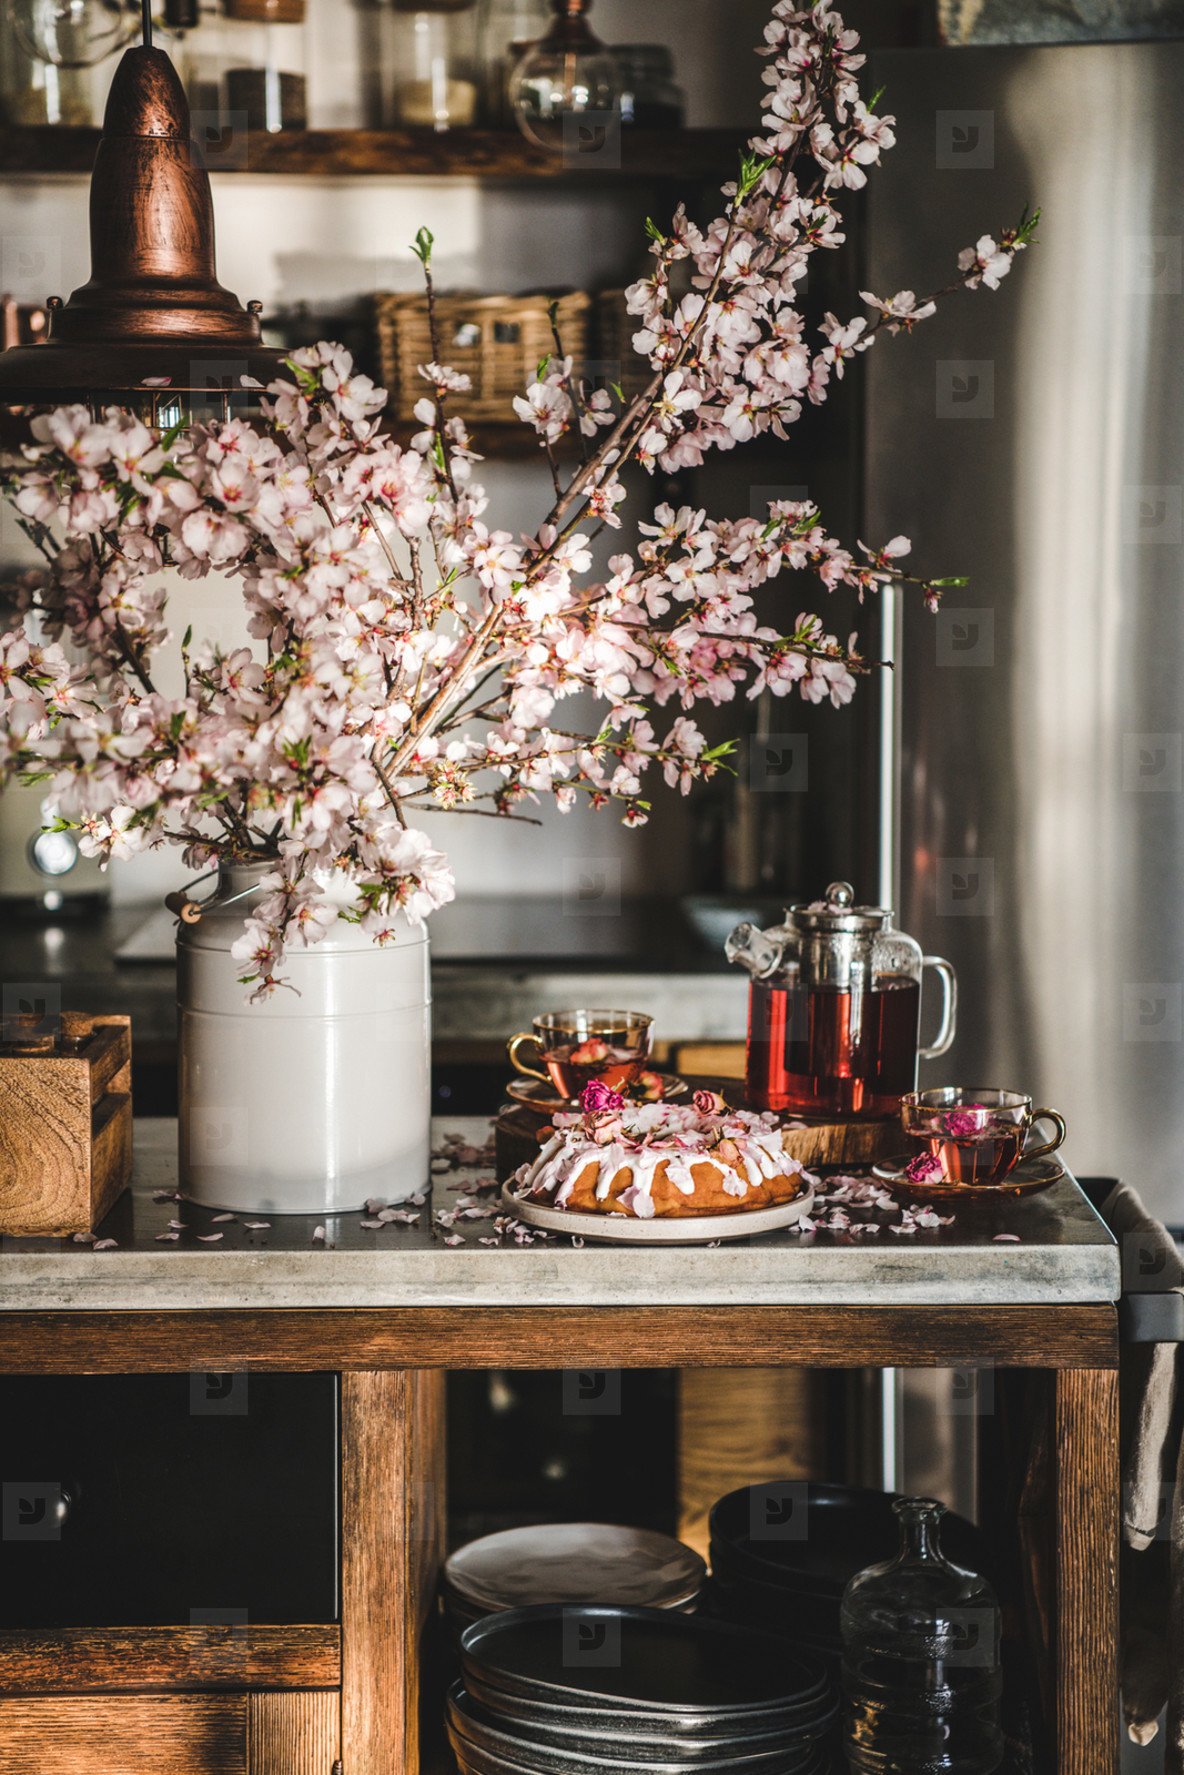 Rose and almond gluten free bundt cake with flowers and tea